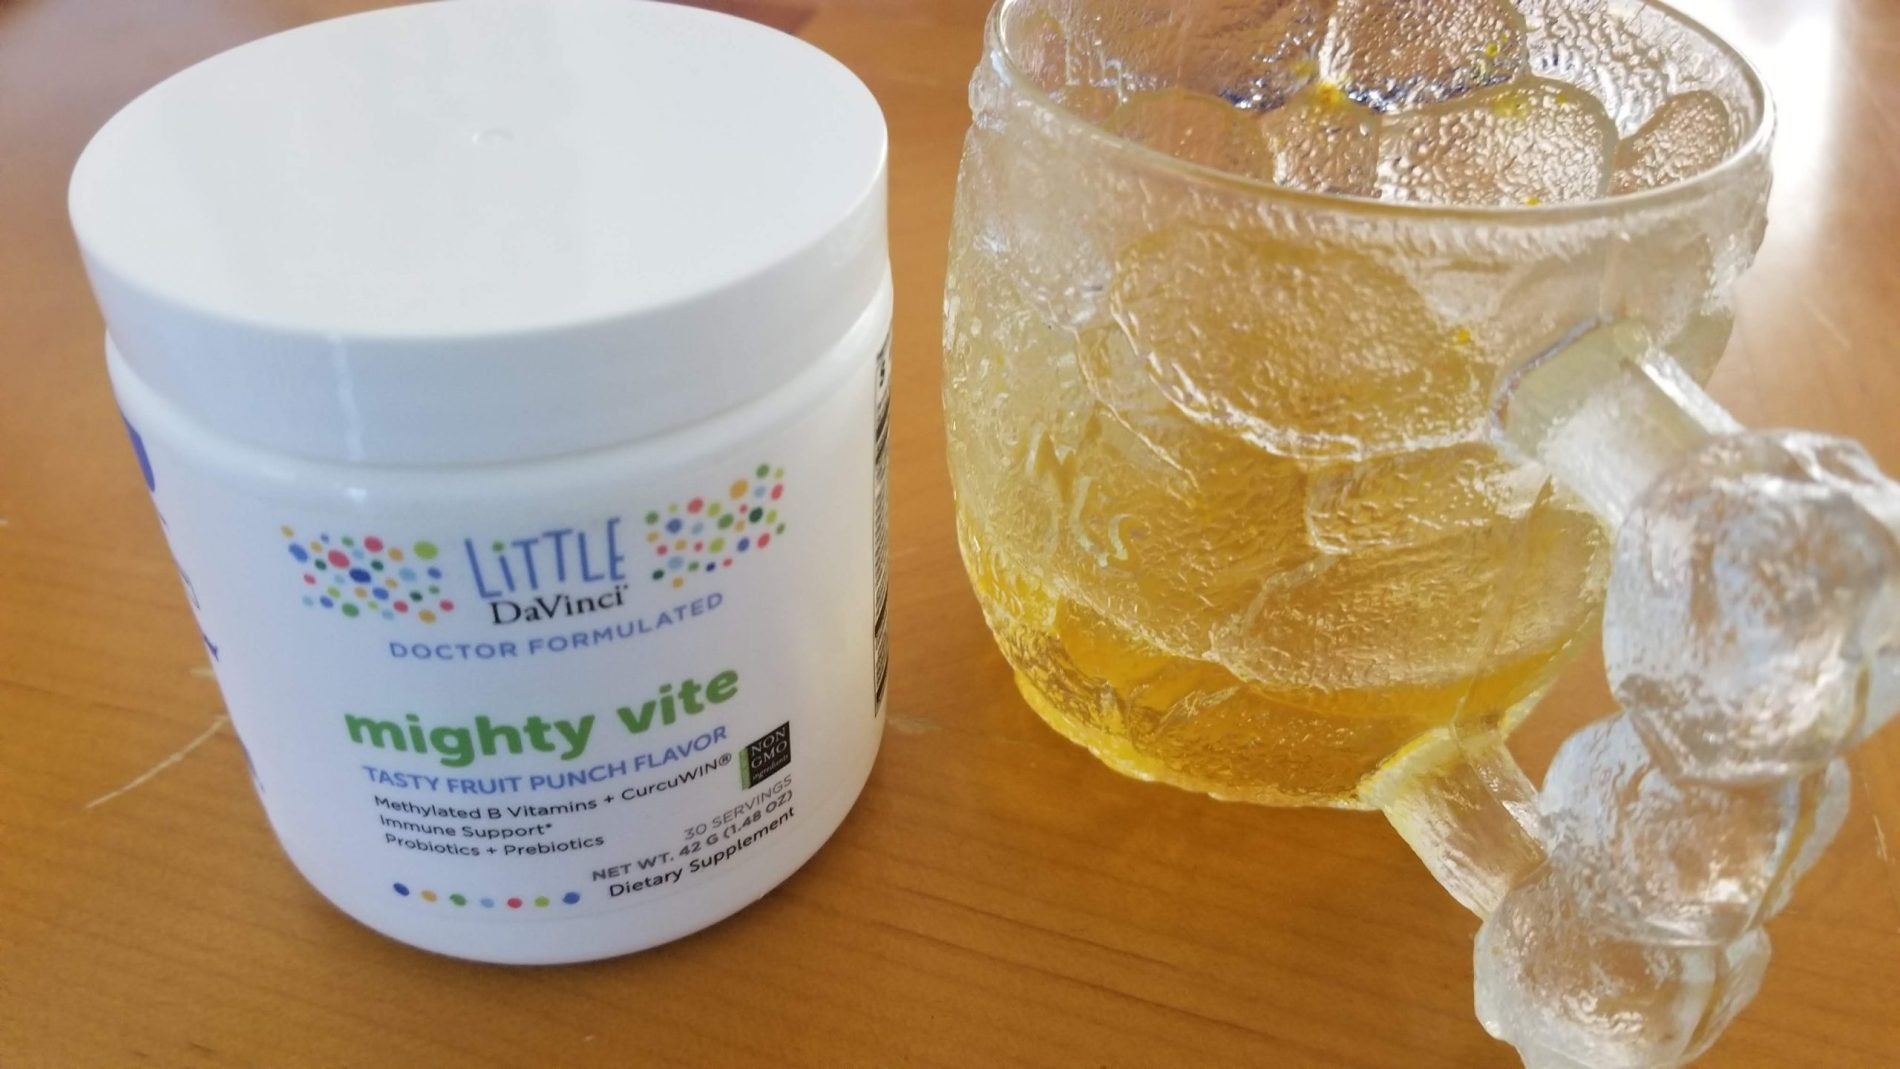 Little DaVinci Mighty Vite is a ready-to-eat powder multivitamin that addresses immune support, digestion support and inflammation support.